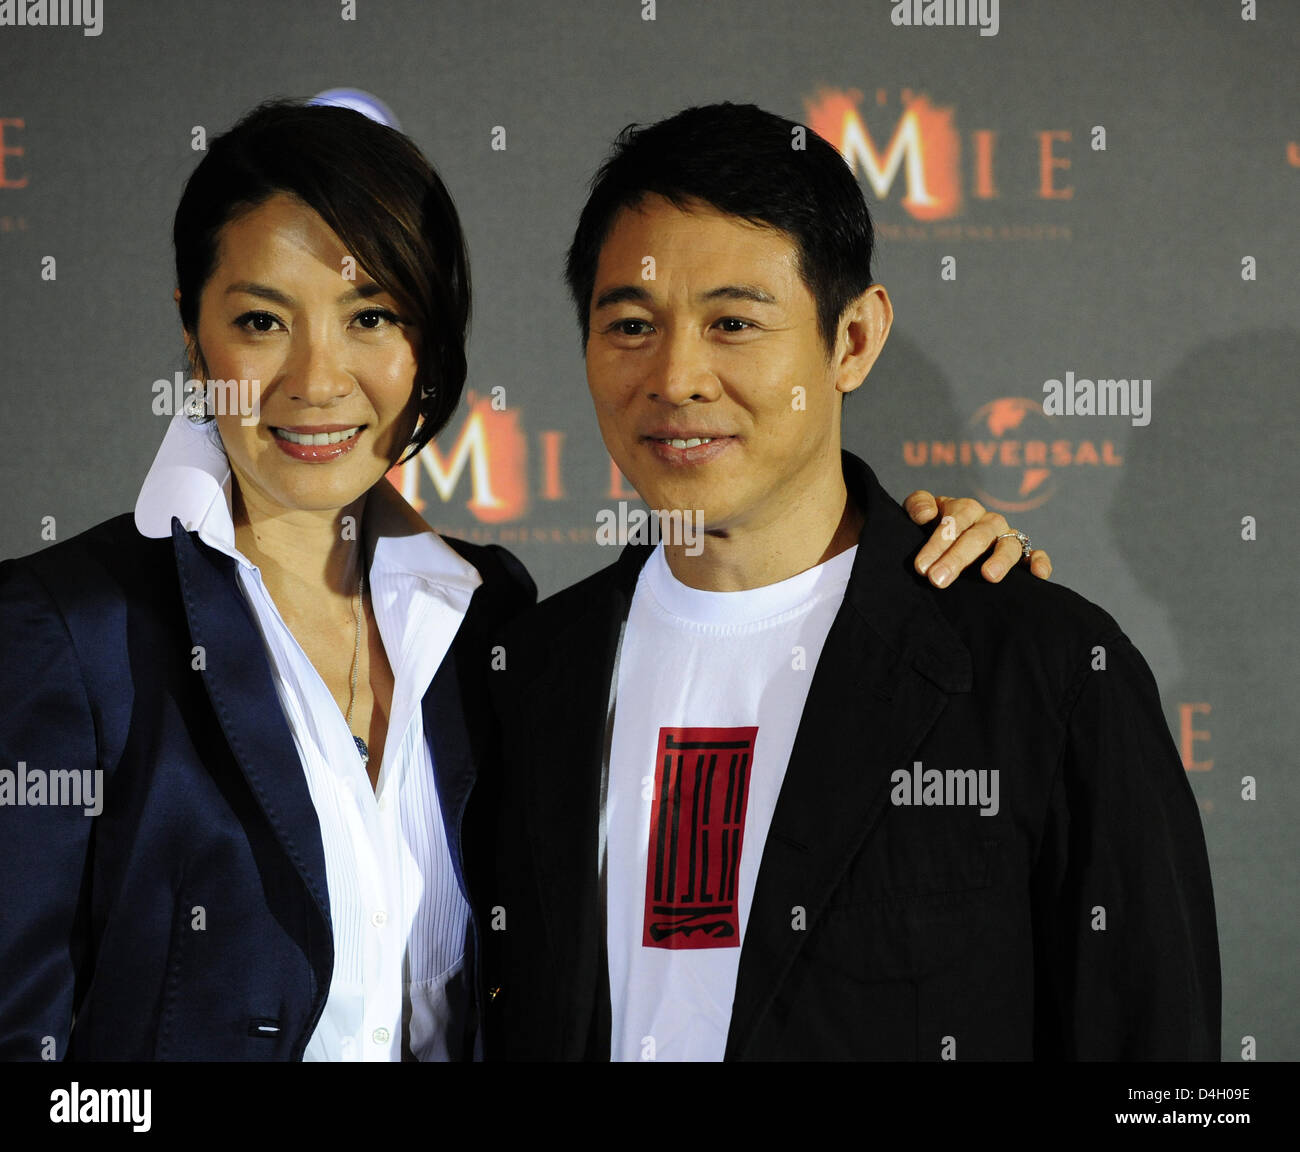 Malaysian Actress Michelle Yeoh And Chinese Actor Jet Li Pose At The Photocall For Their Film The Mummy Tomb Of The Dragon Emperor In Berlin Germany 23 July 2008 The Third Part